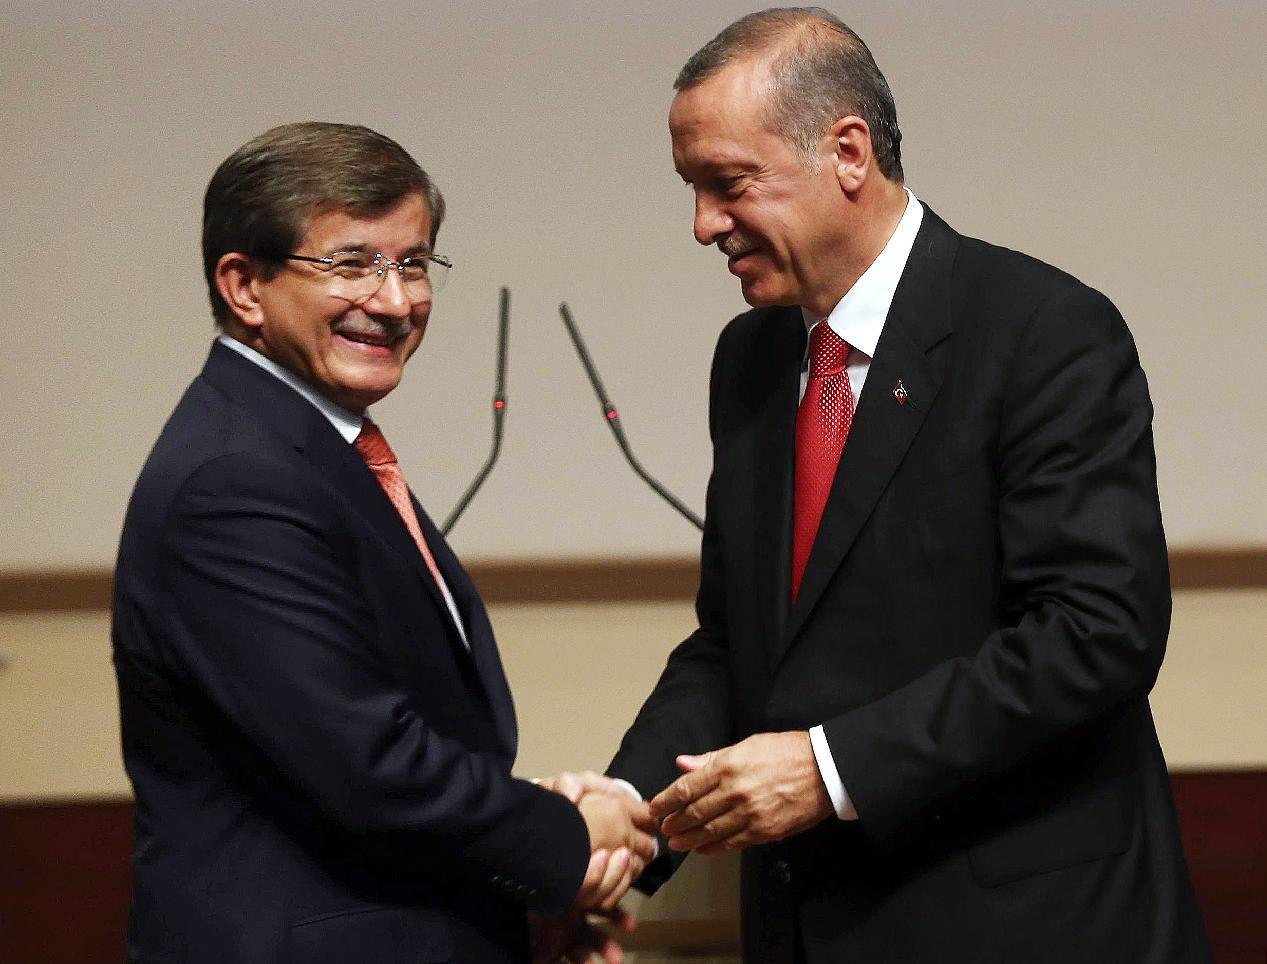 Turkey's president-elect Recep Tayyip Erdogan (R) shakes hands with Foreign Minister Ahmet Davutoglu after he announced Davutoglu as new chairman of his ruling AKP party and new prime minister, in Ankara on August 21, 2014 (AFP Photo/Adem Altan)